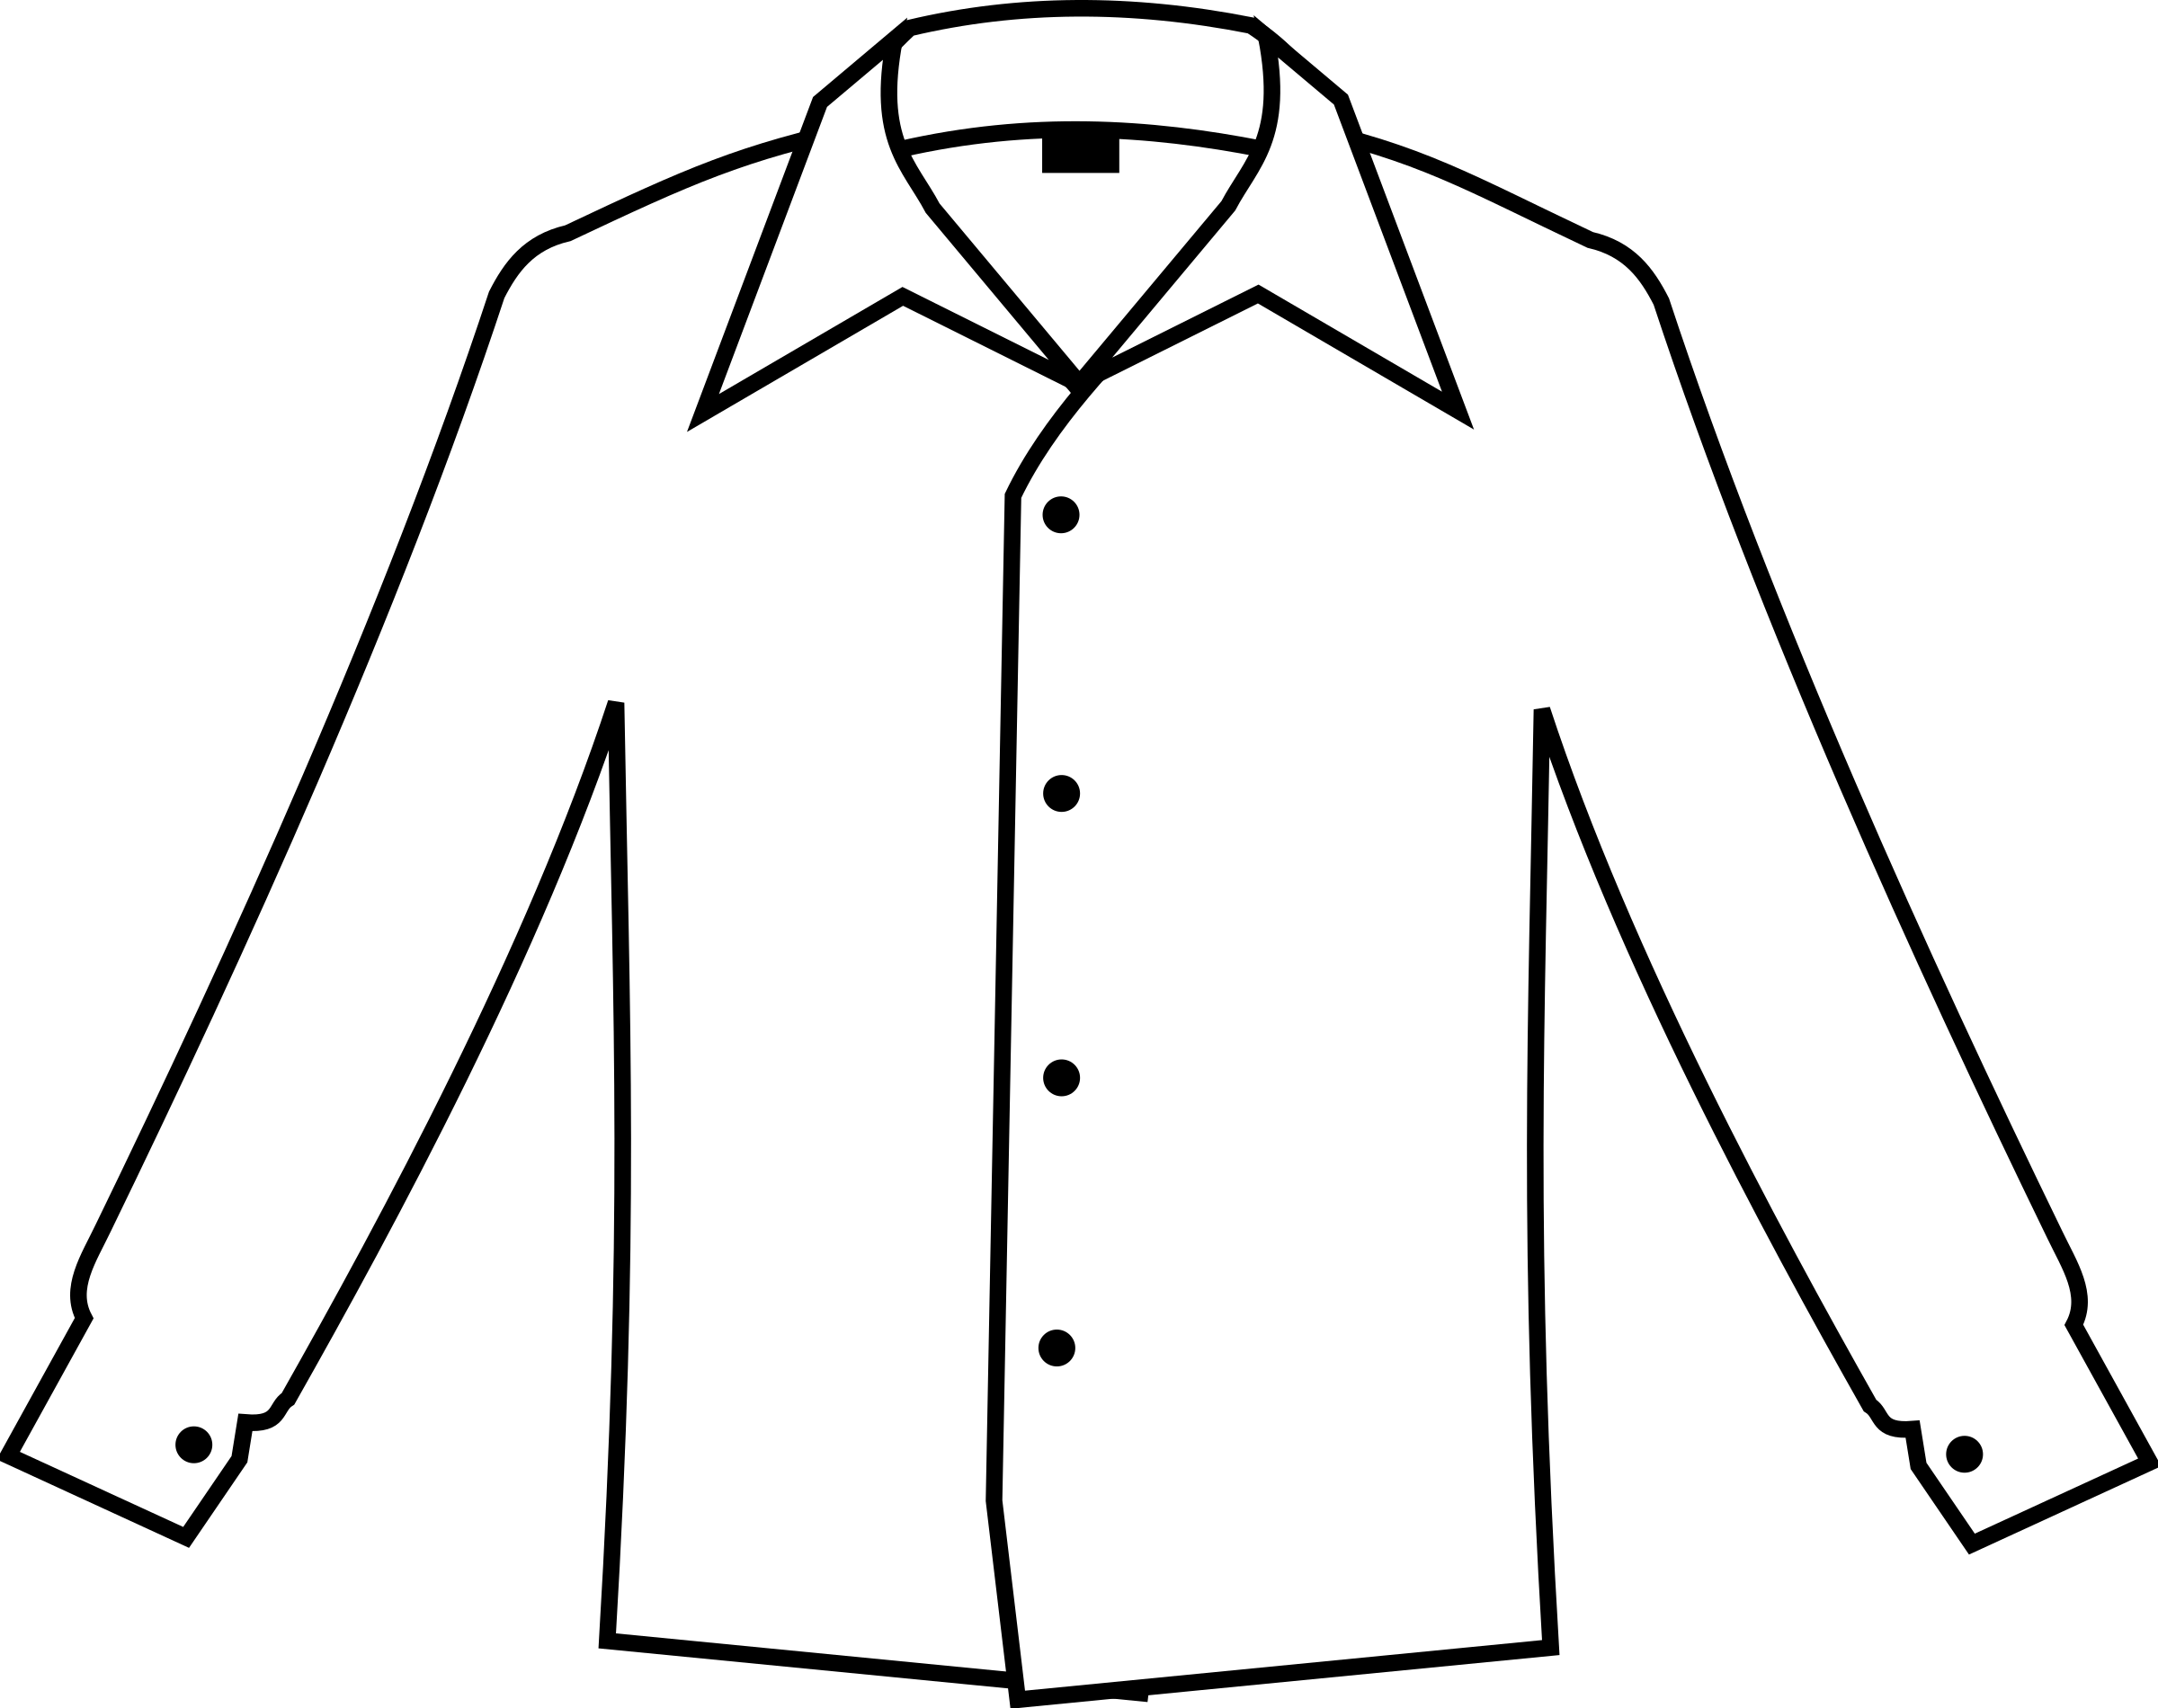 Clipart - Simple white shirt